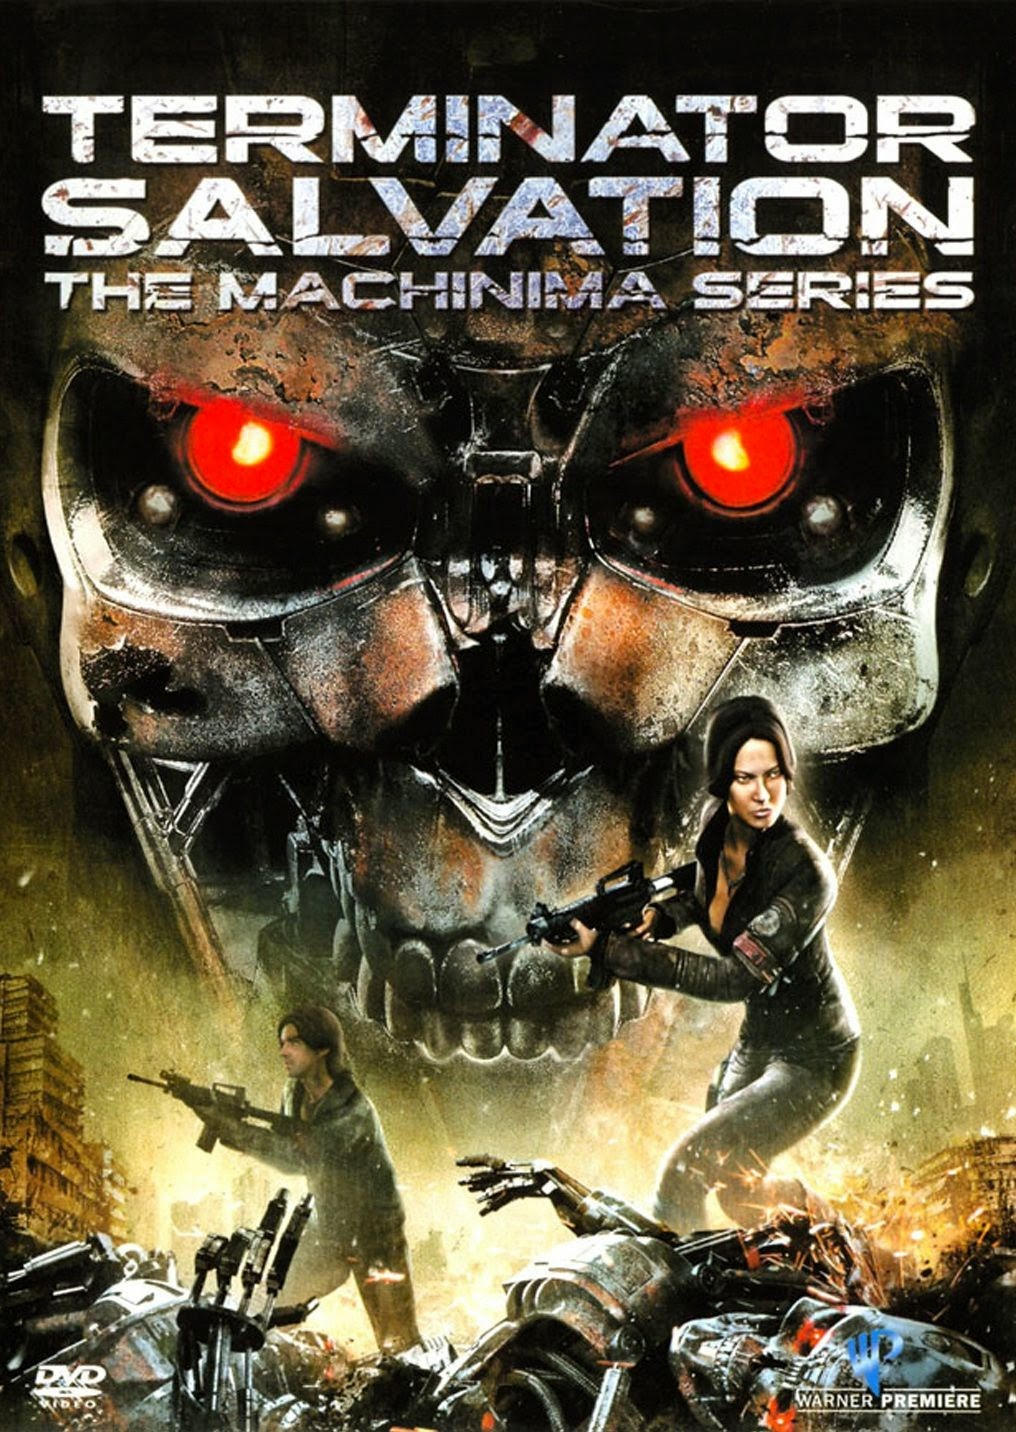 http://superheroesrevelados.blogspot.com.ar/2012/08/terminator-salvation-machinima-series.html